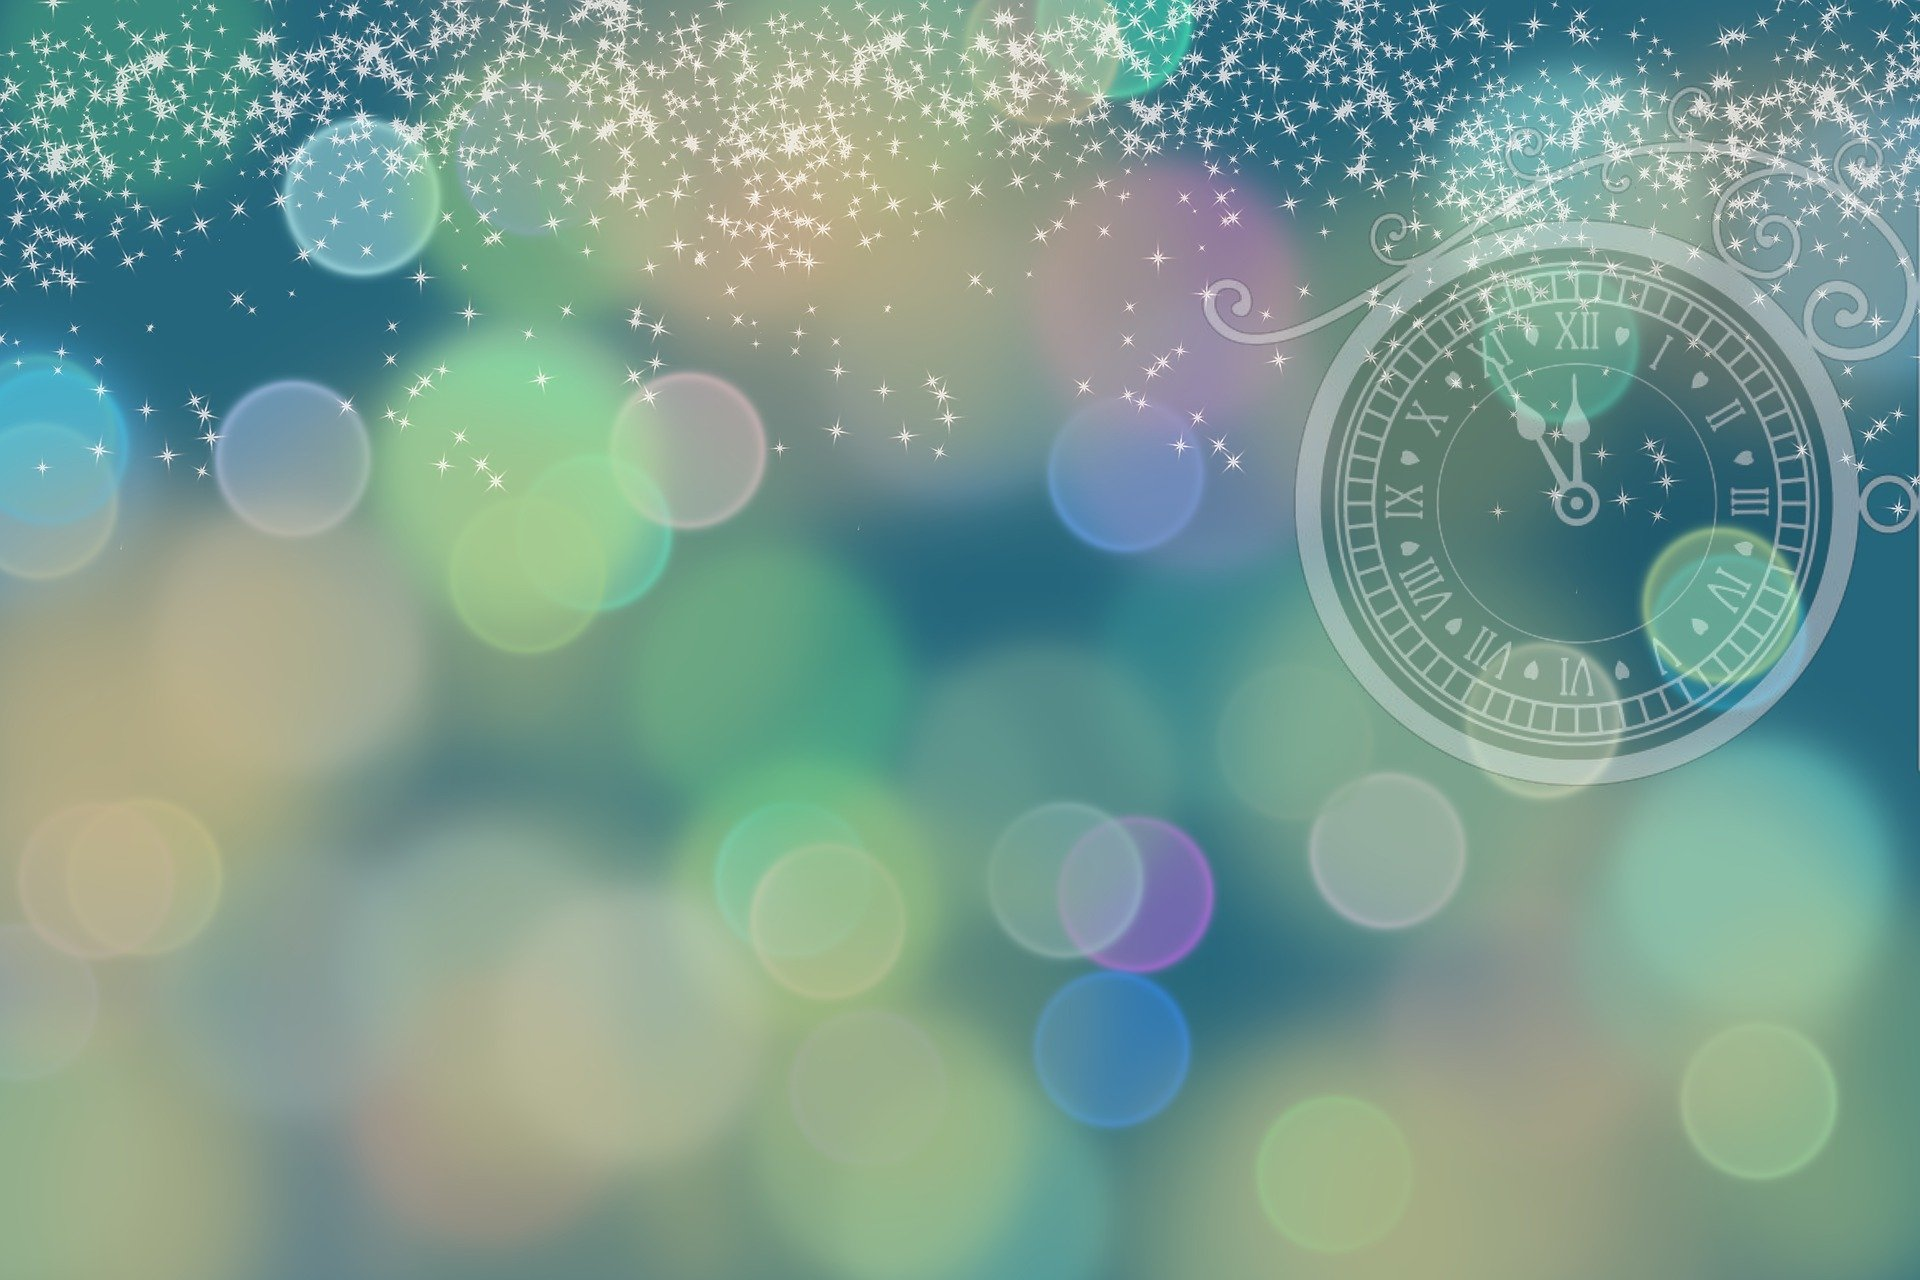 Colorful Background with a clock in right corner with Roman numbers